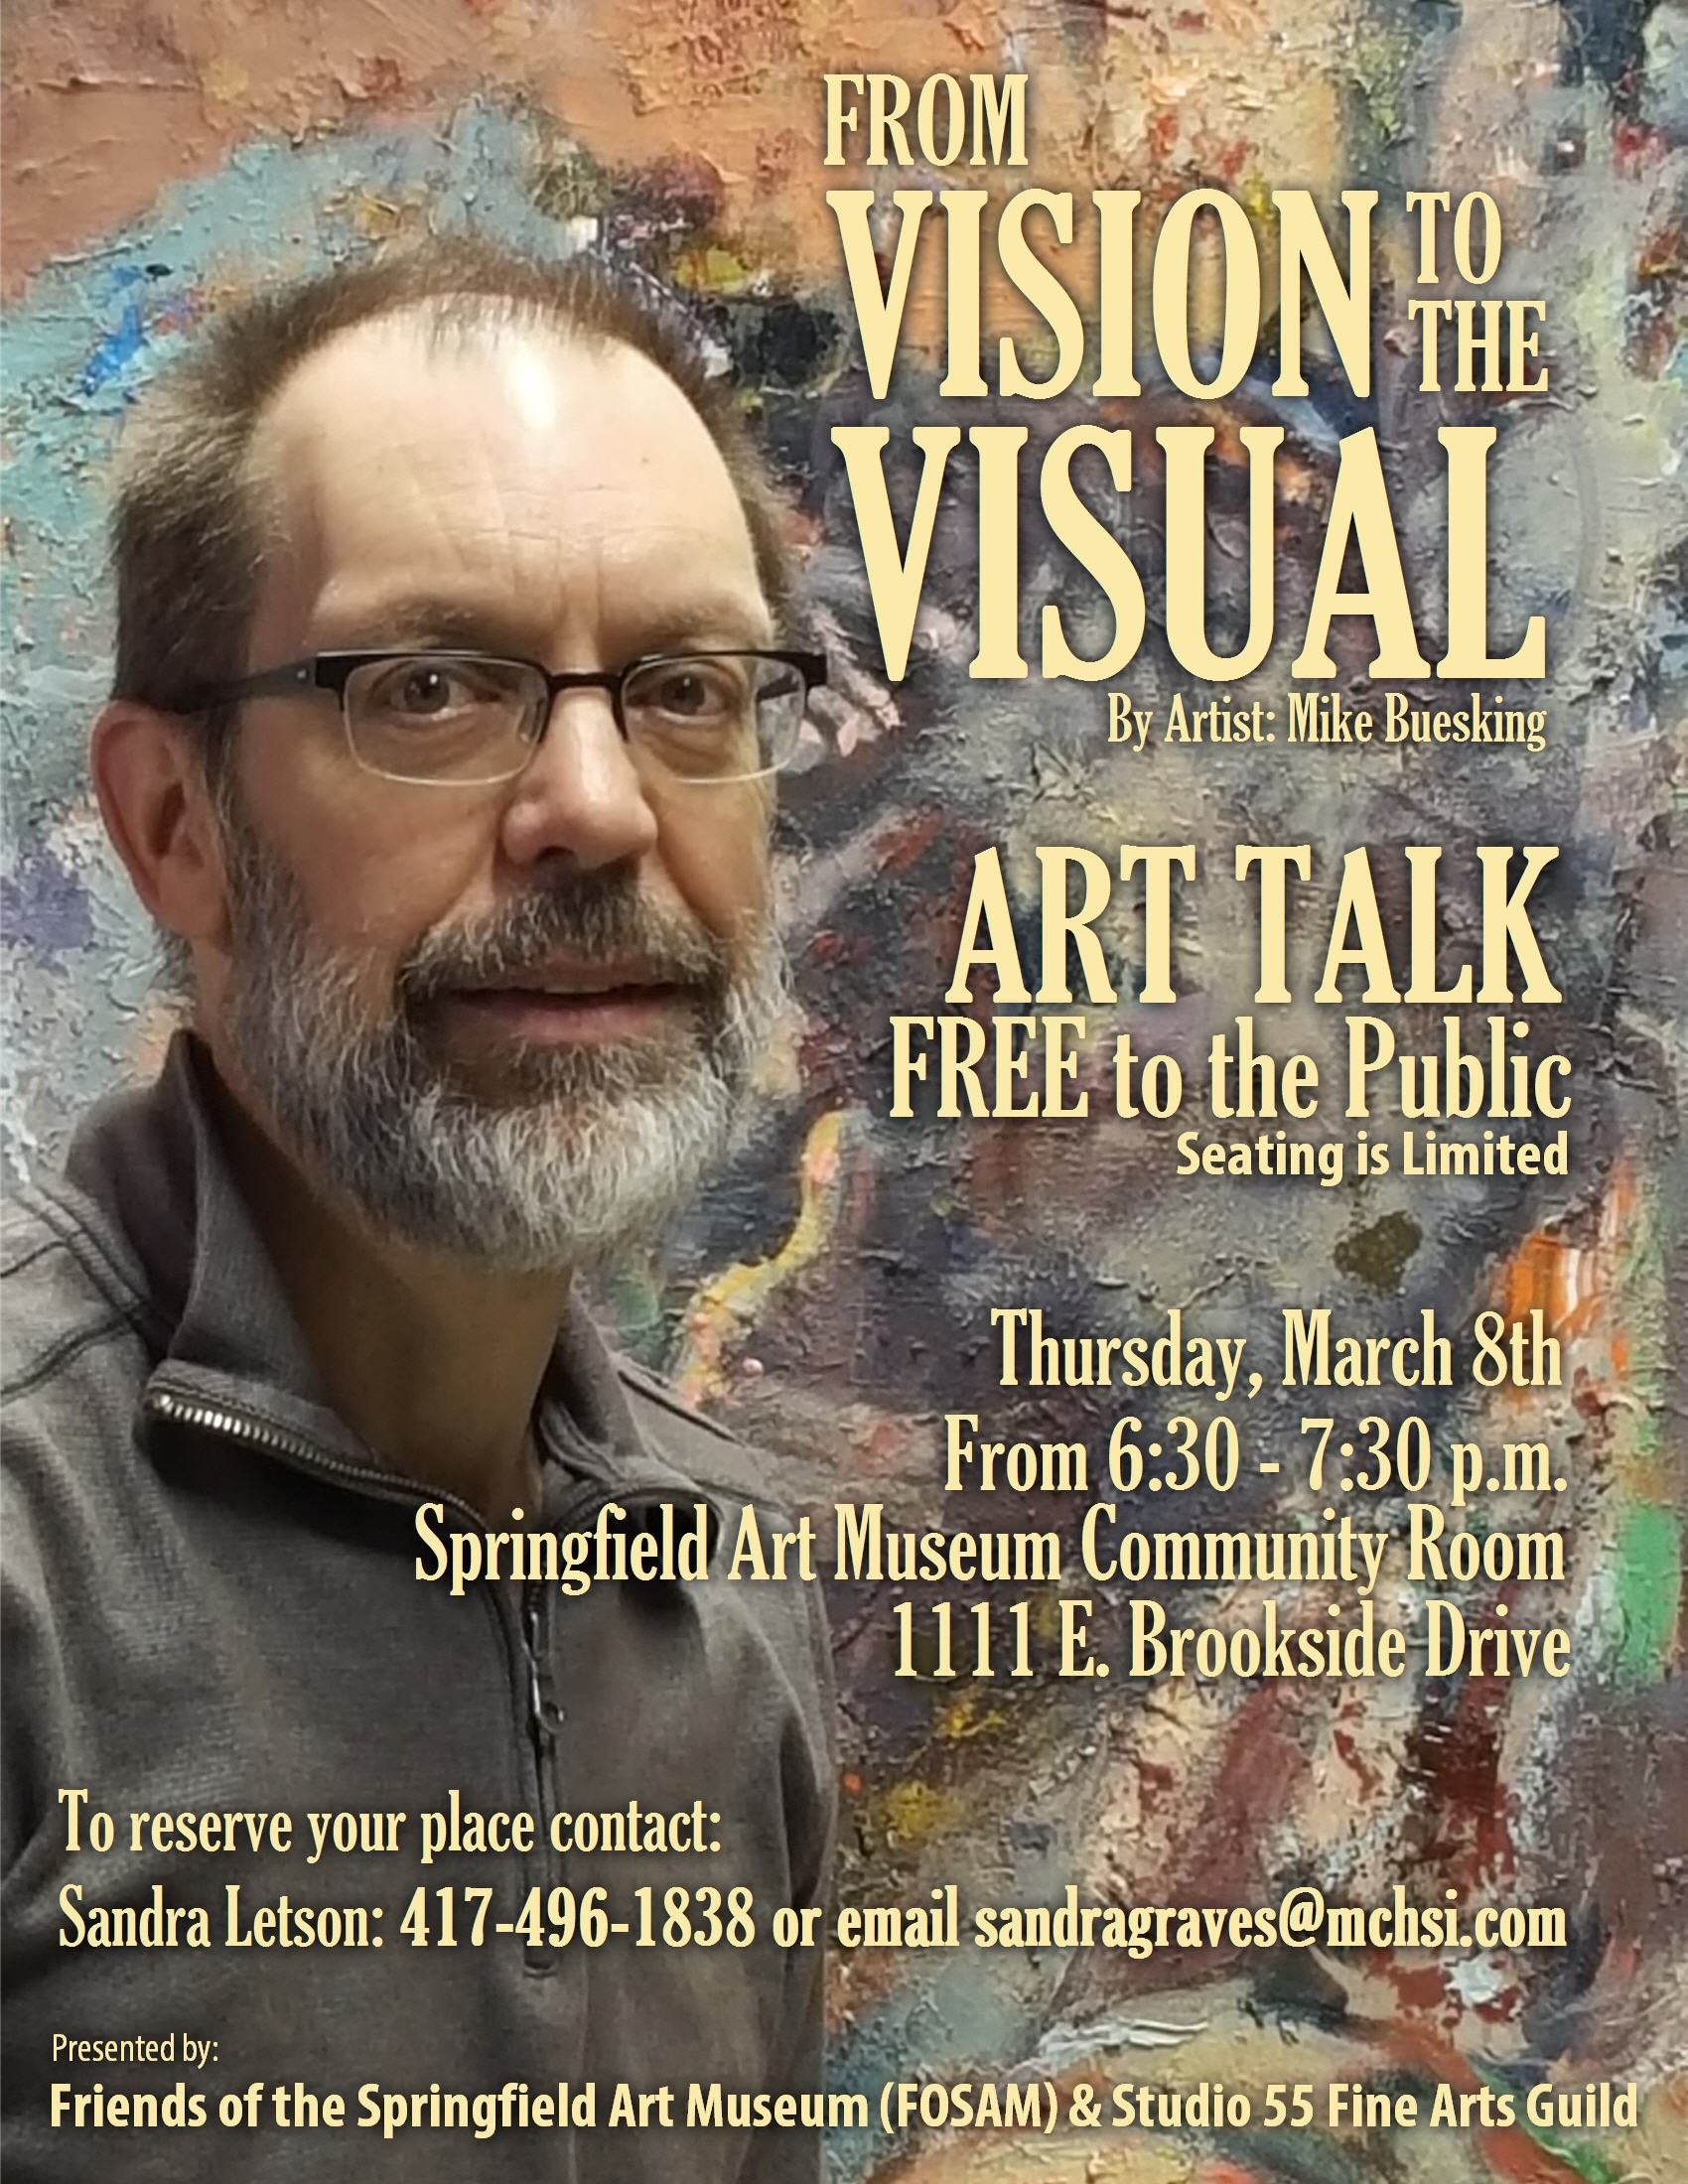 Mike Buesking Art Talk poster